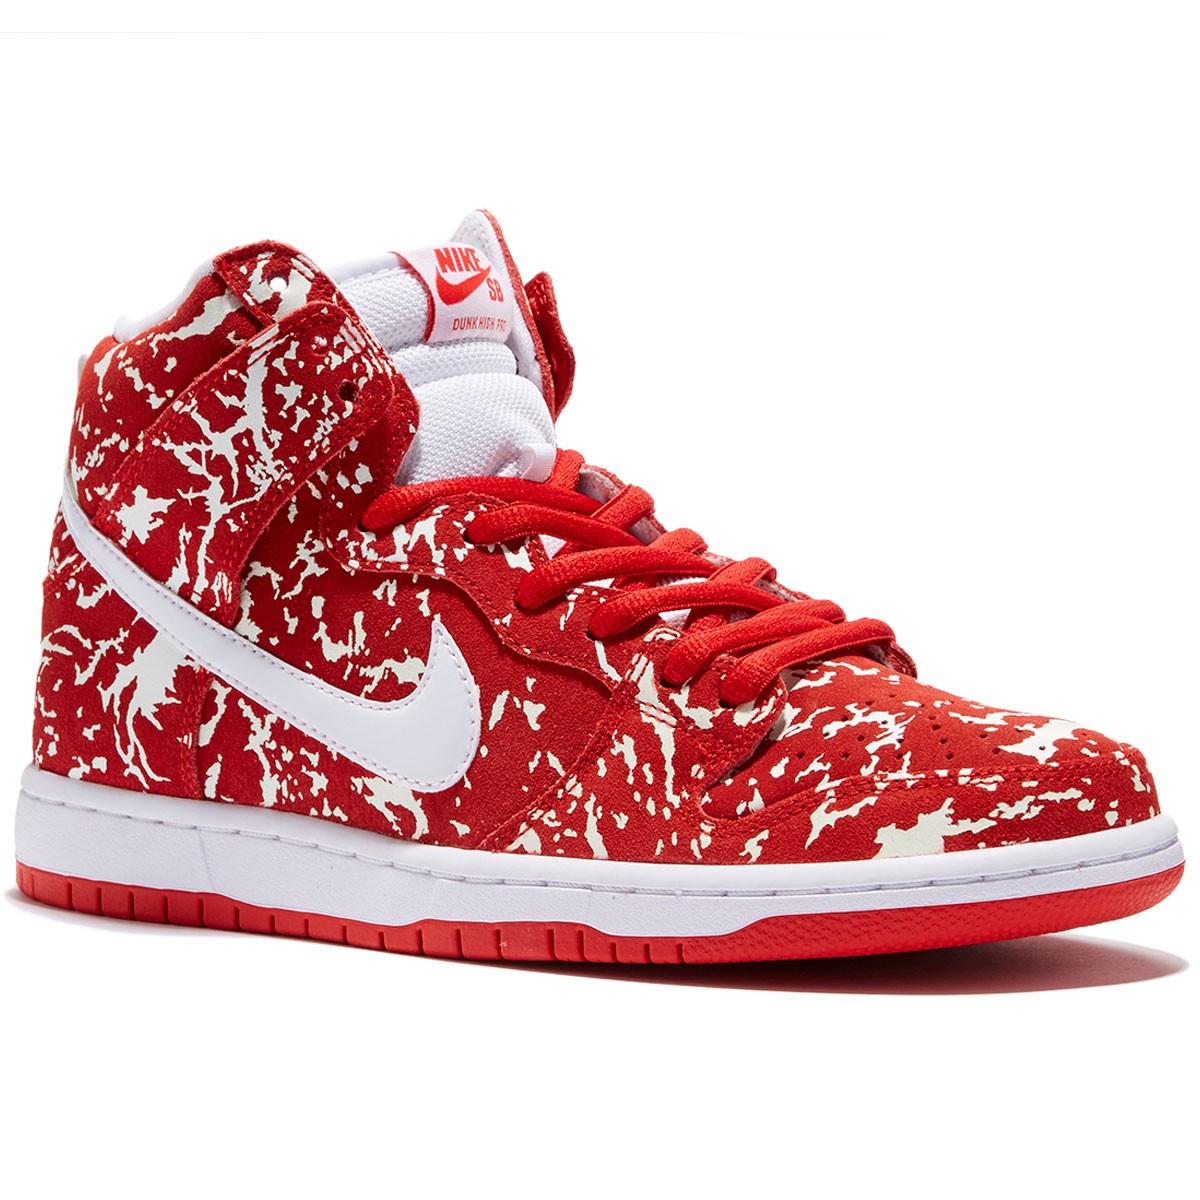 Nike Dunk High Premium SB Shoes - Red/Red/White - 8.0